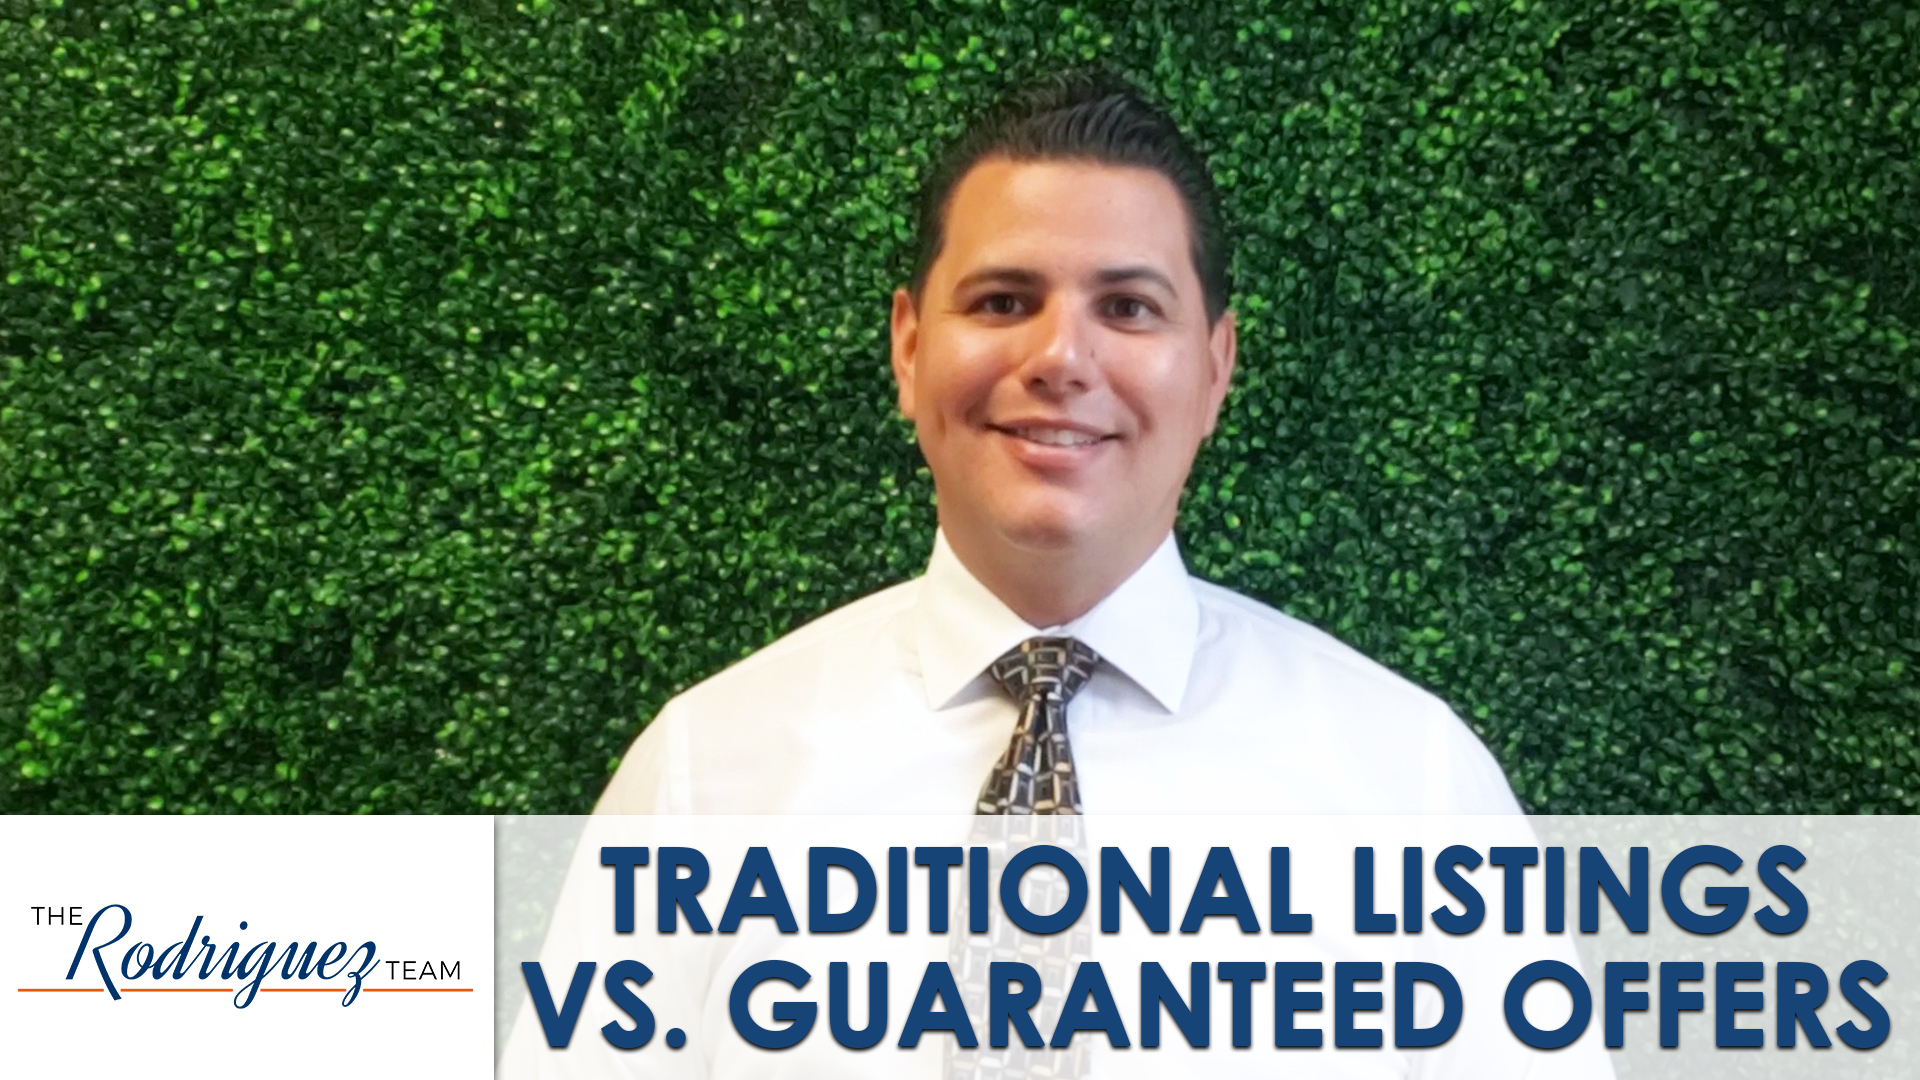 Comparing Our Traditional Listings and Guaranteed Offers